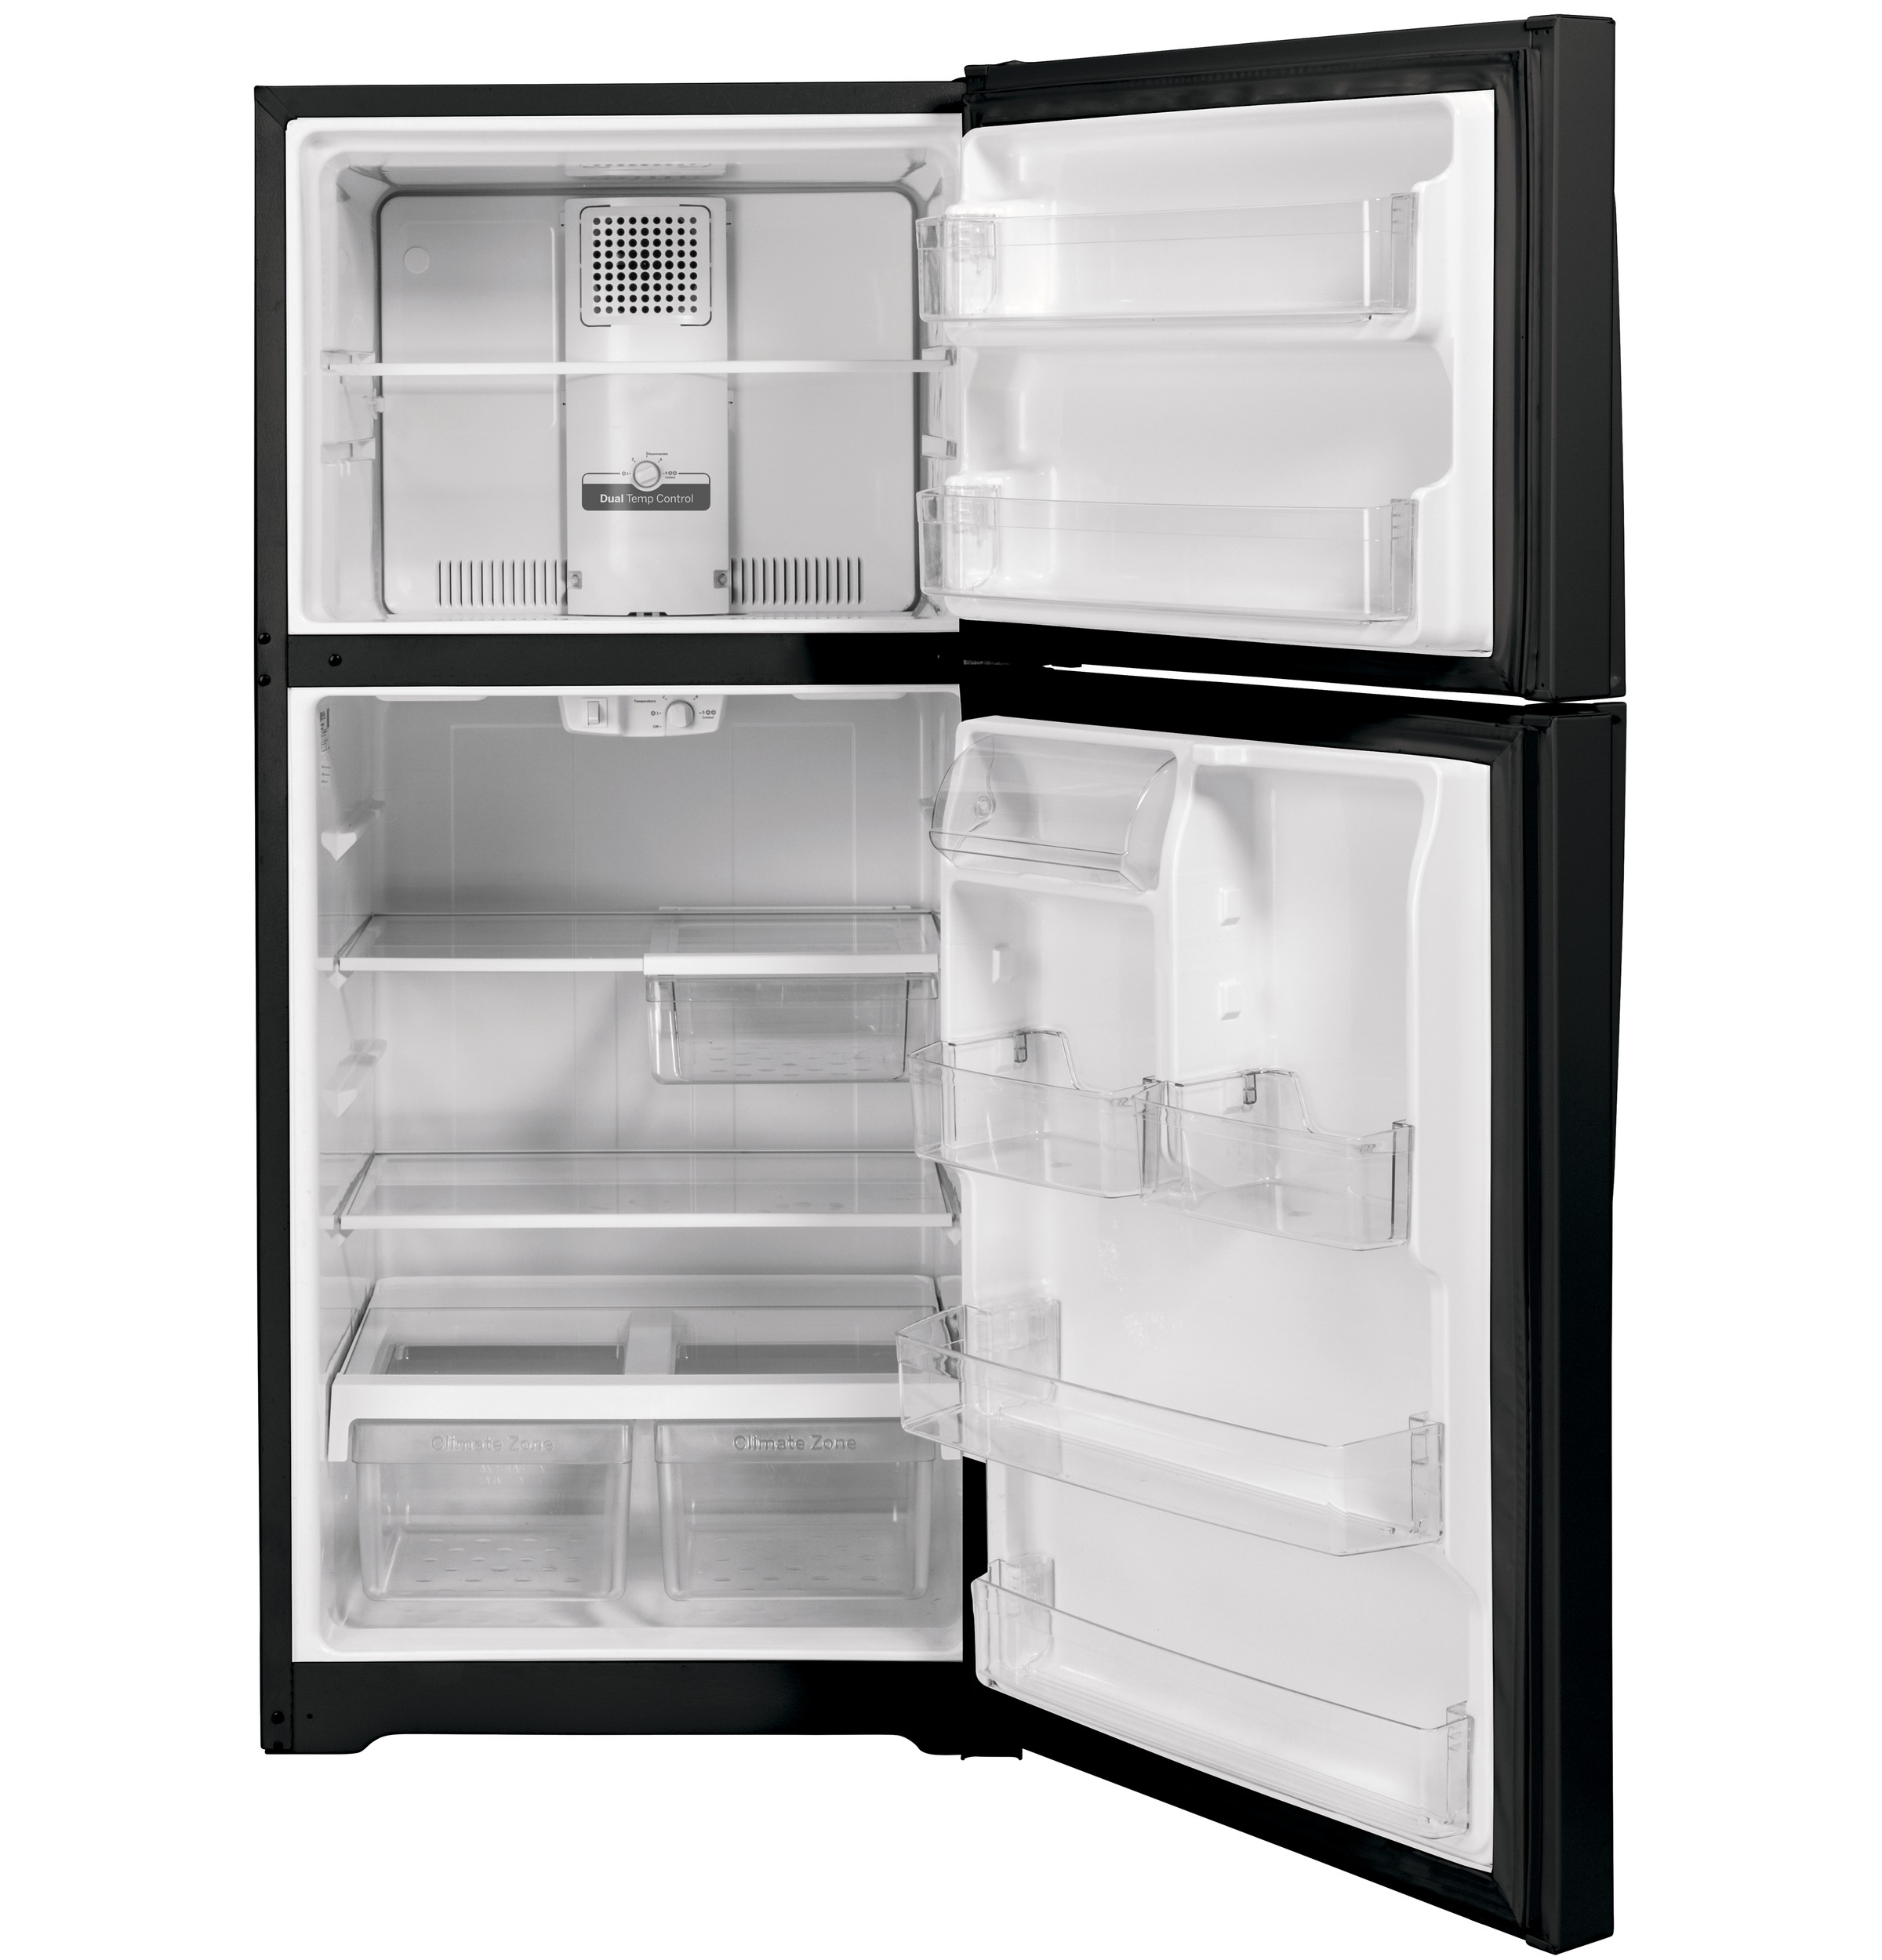 Model: GTS22KGNRBB | GE GE® 21.9 Cu. Ft. Top-Freezer Refrigerator